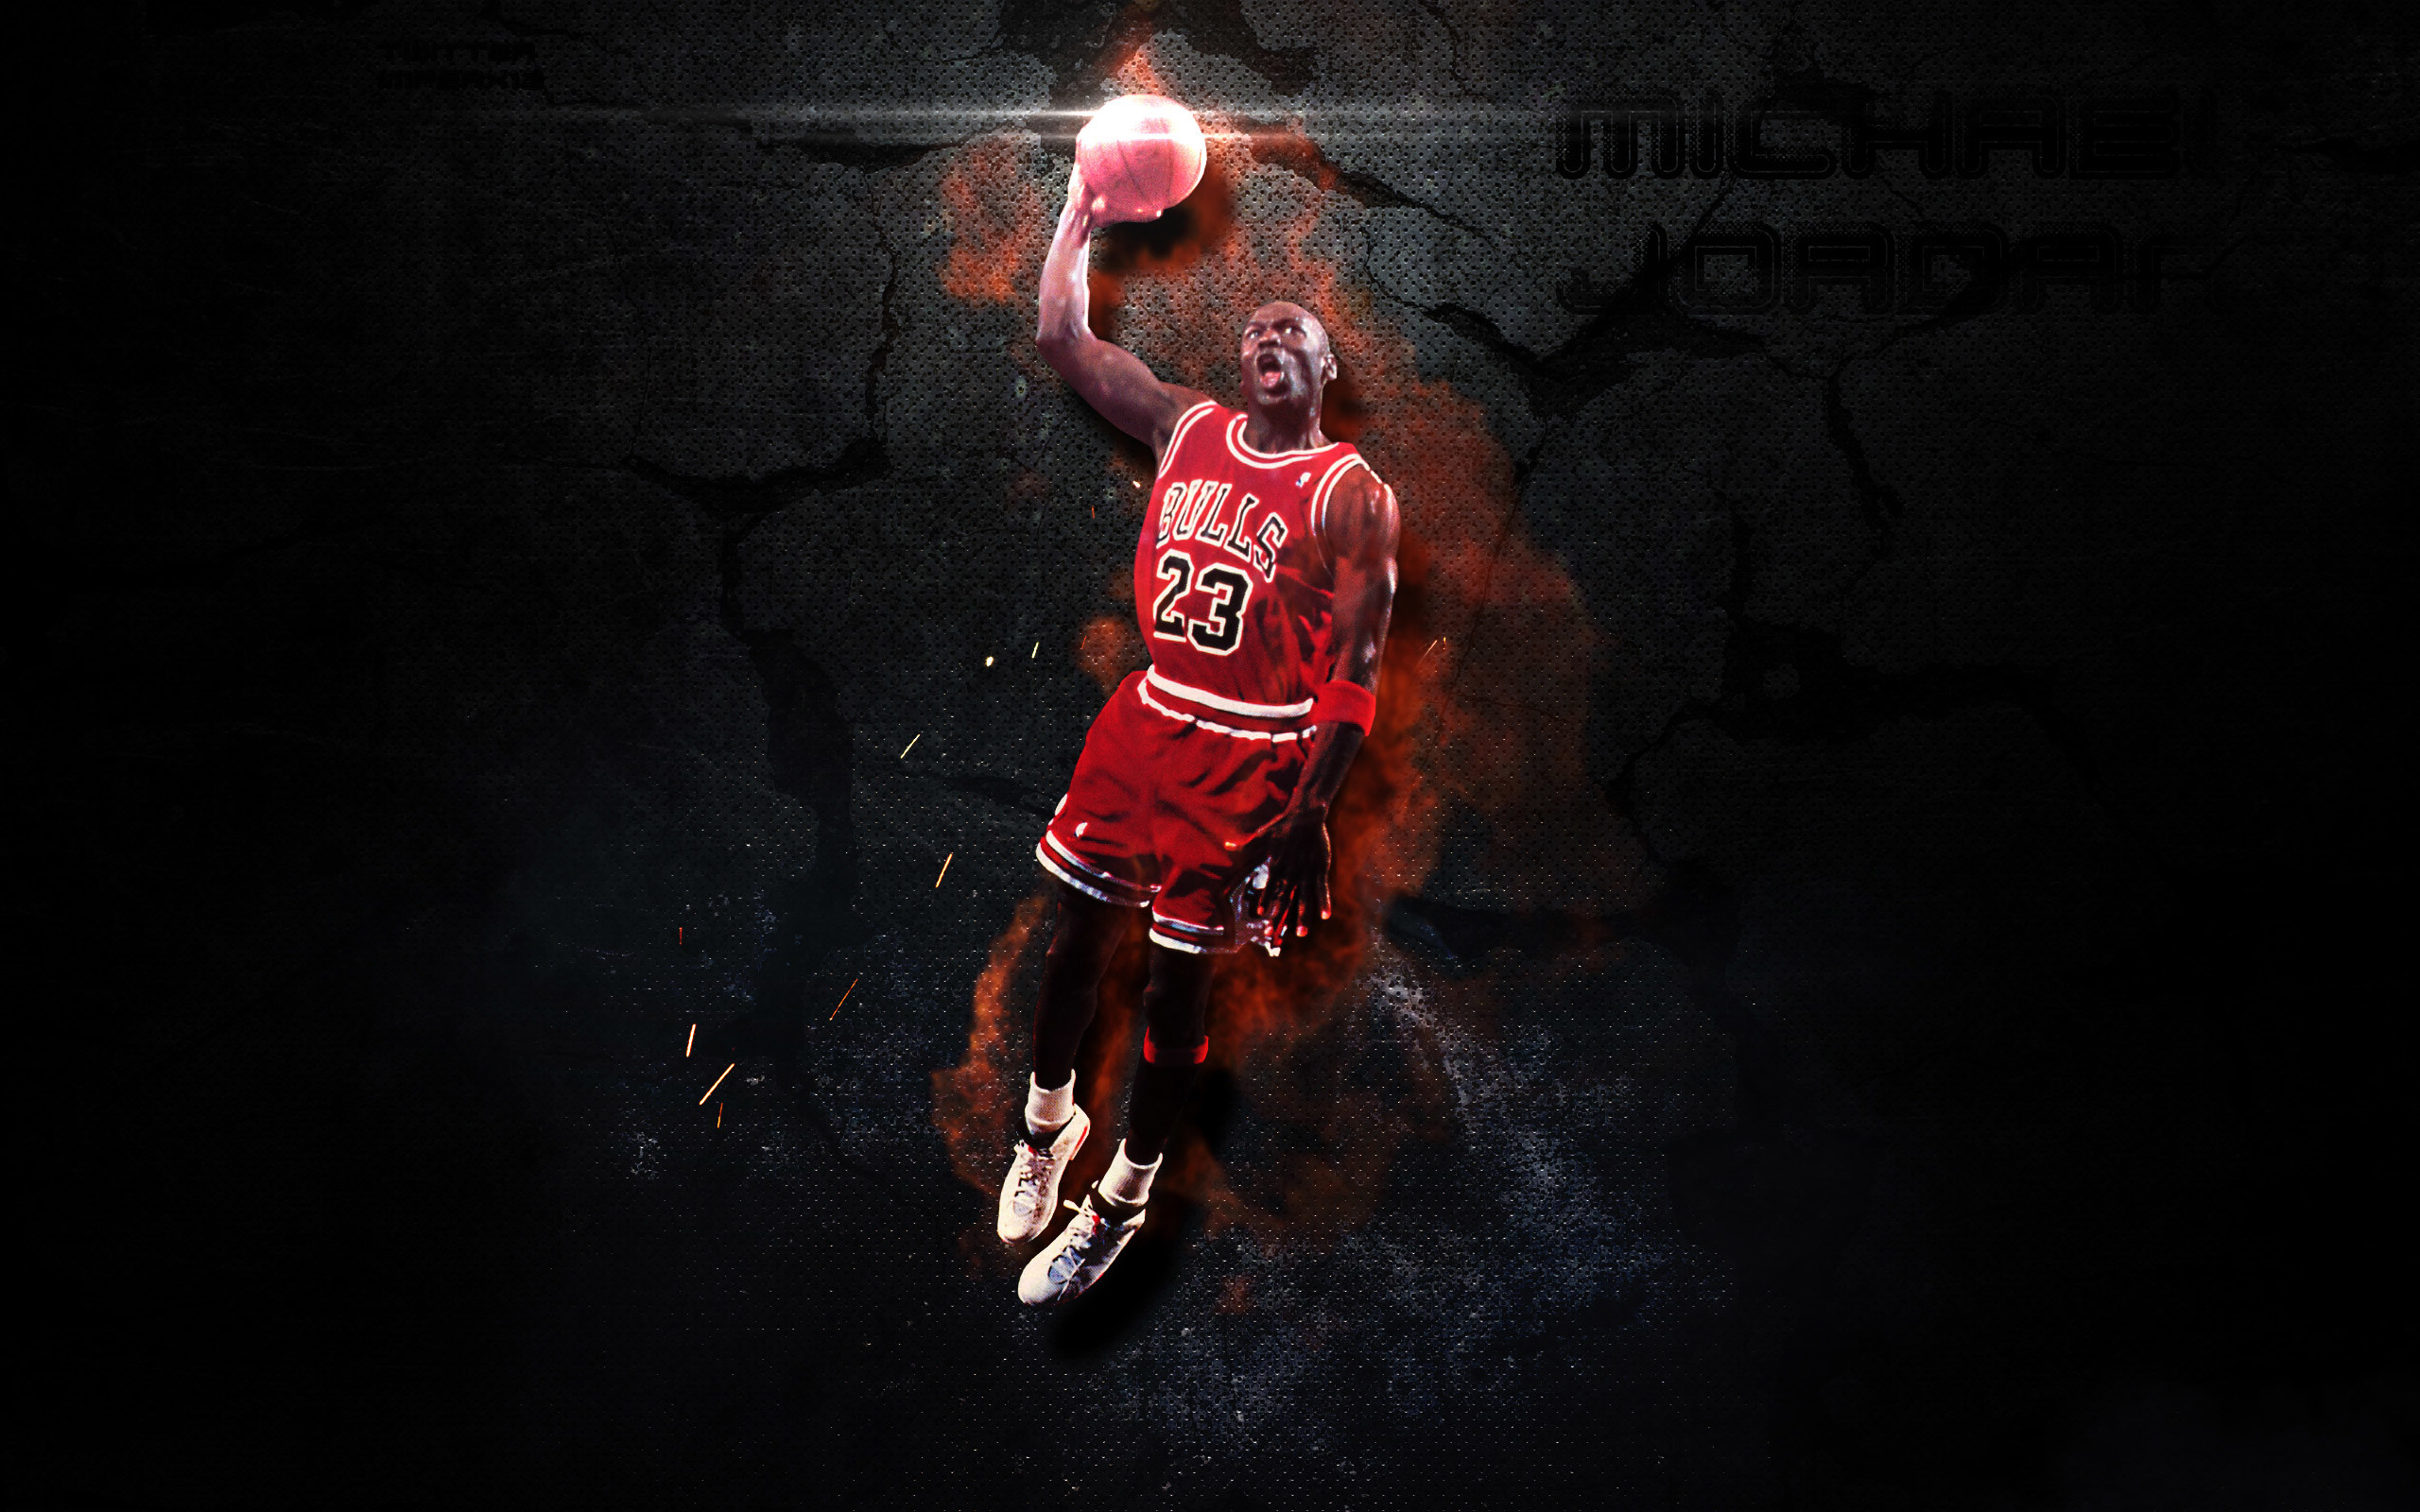 2560x1600 Michael Jordan HD Wallpapers - Wallpaper Cave Download free Designs wallpaper  Jordan for mobile phones 1920×1200 .